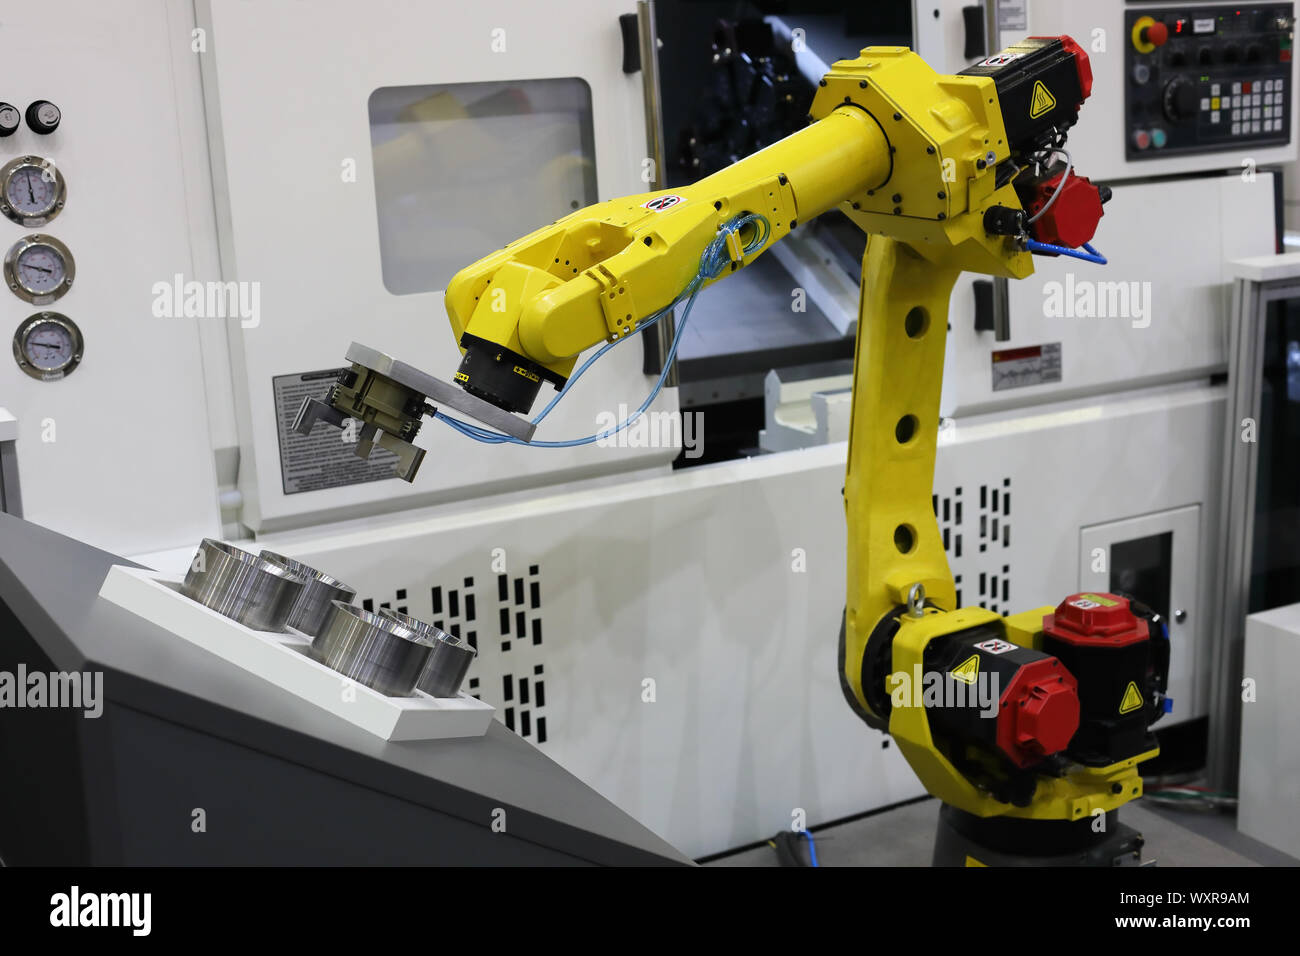 Automated CNC machine loading with robotic arm. Selective focus Stock Photo  - Alamy